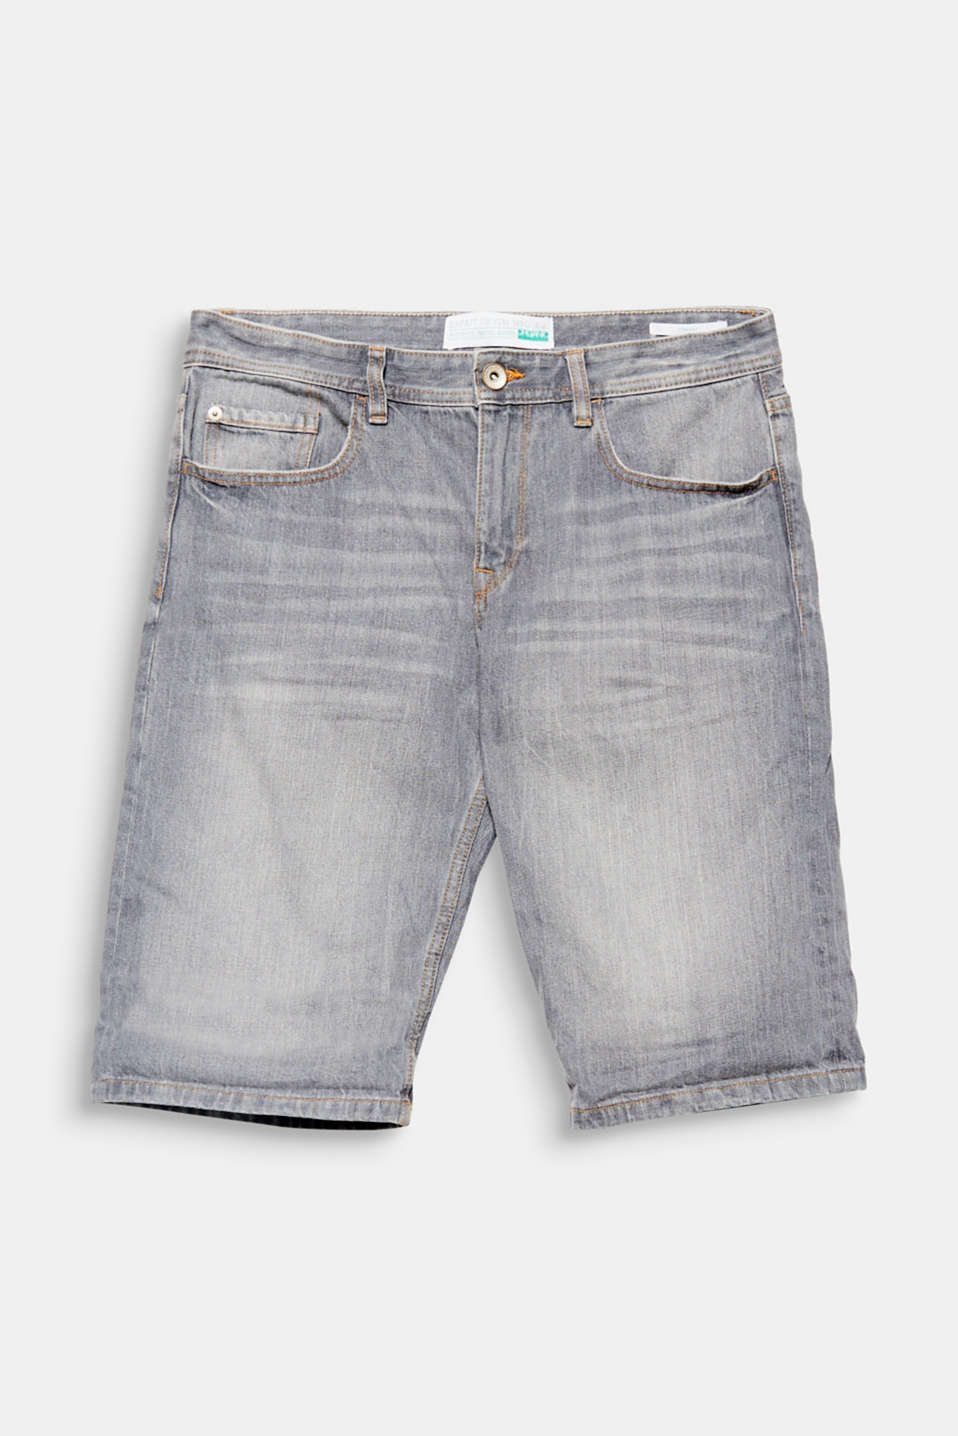 Denim in the summer! The cotton/linen blend with high-quality organic cotton makes these denim shorts stylish favourites.